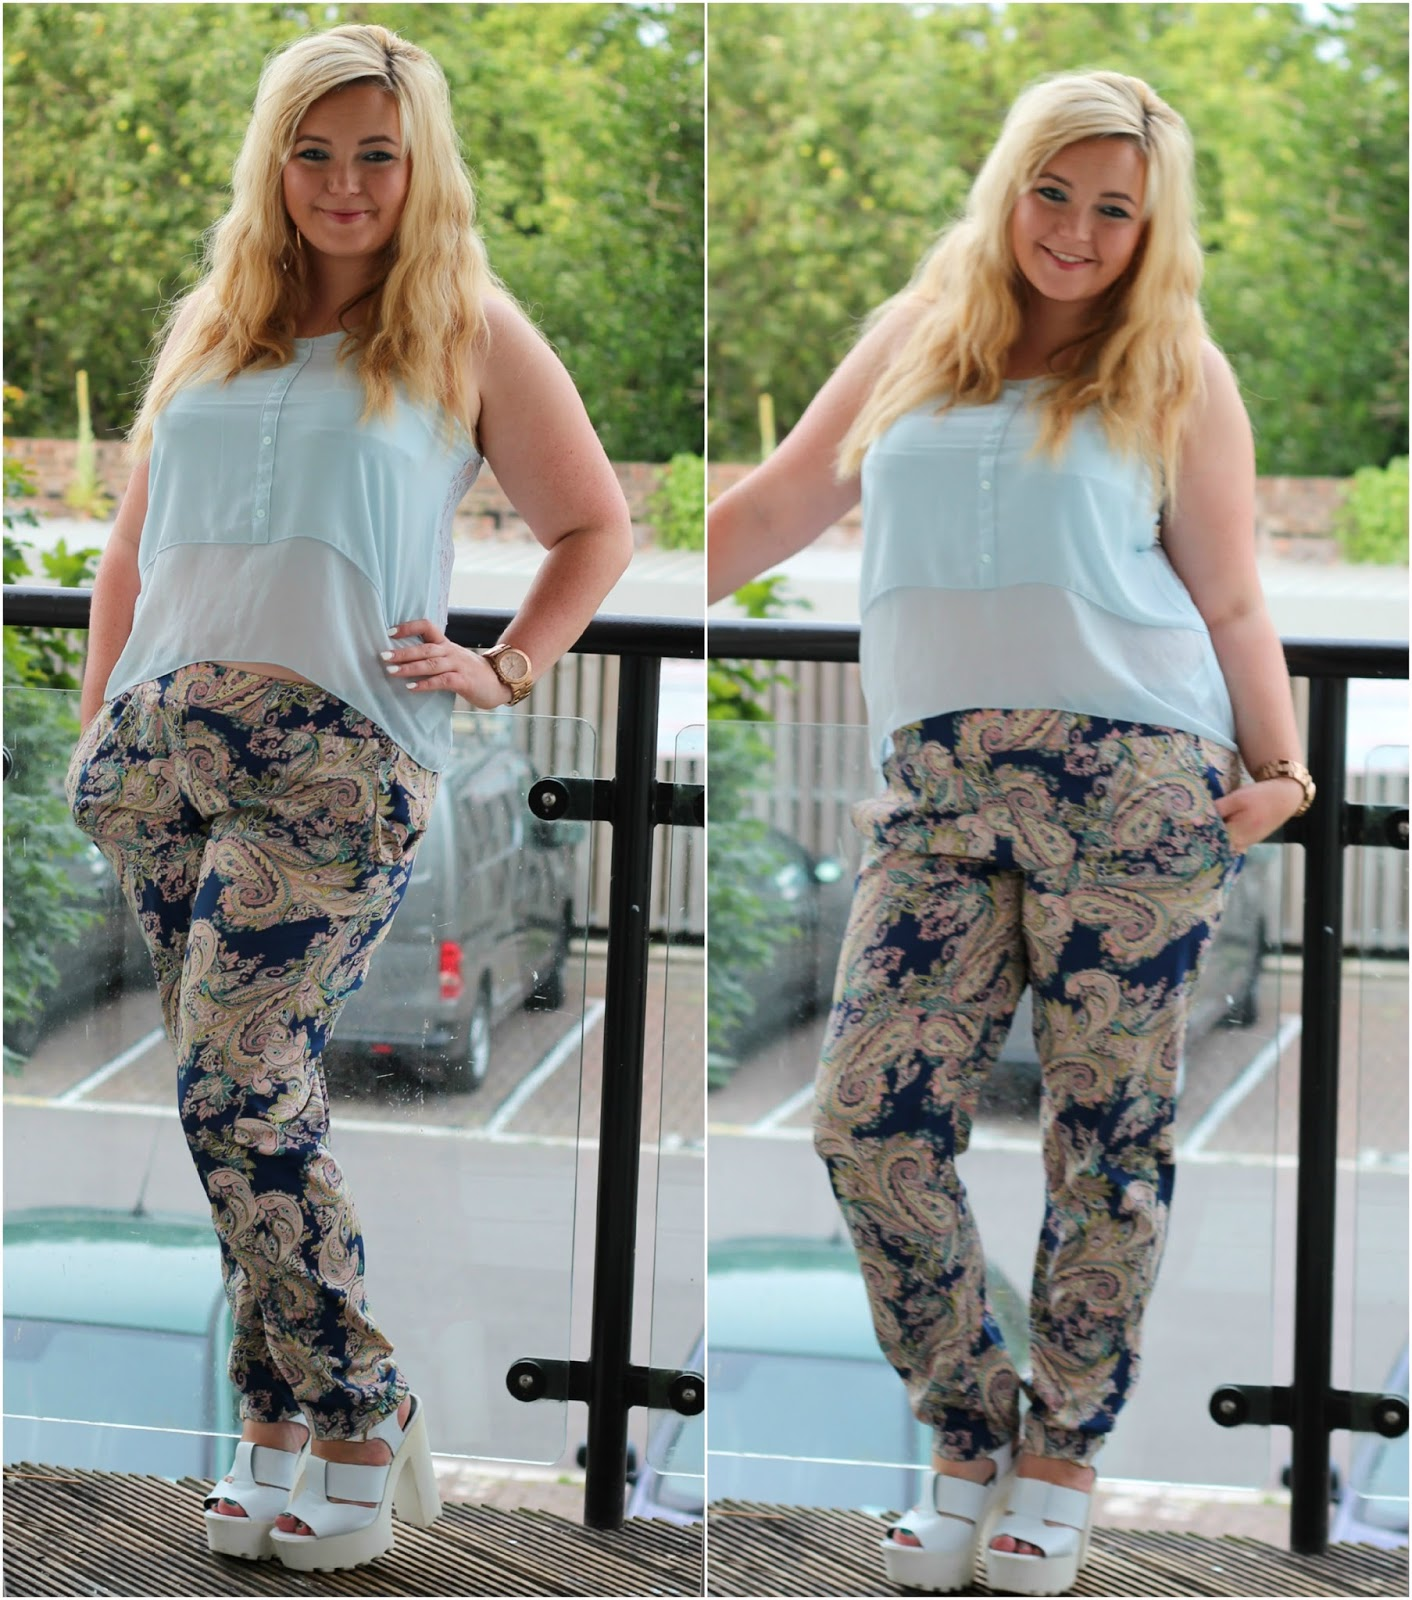 Date night outfit - H&M light blue chiffon crop top primark paisley print pastel trousers river island white cleated sole platforms